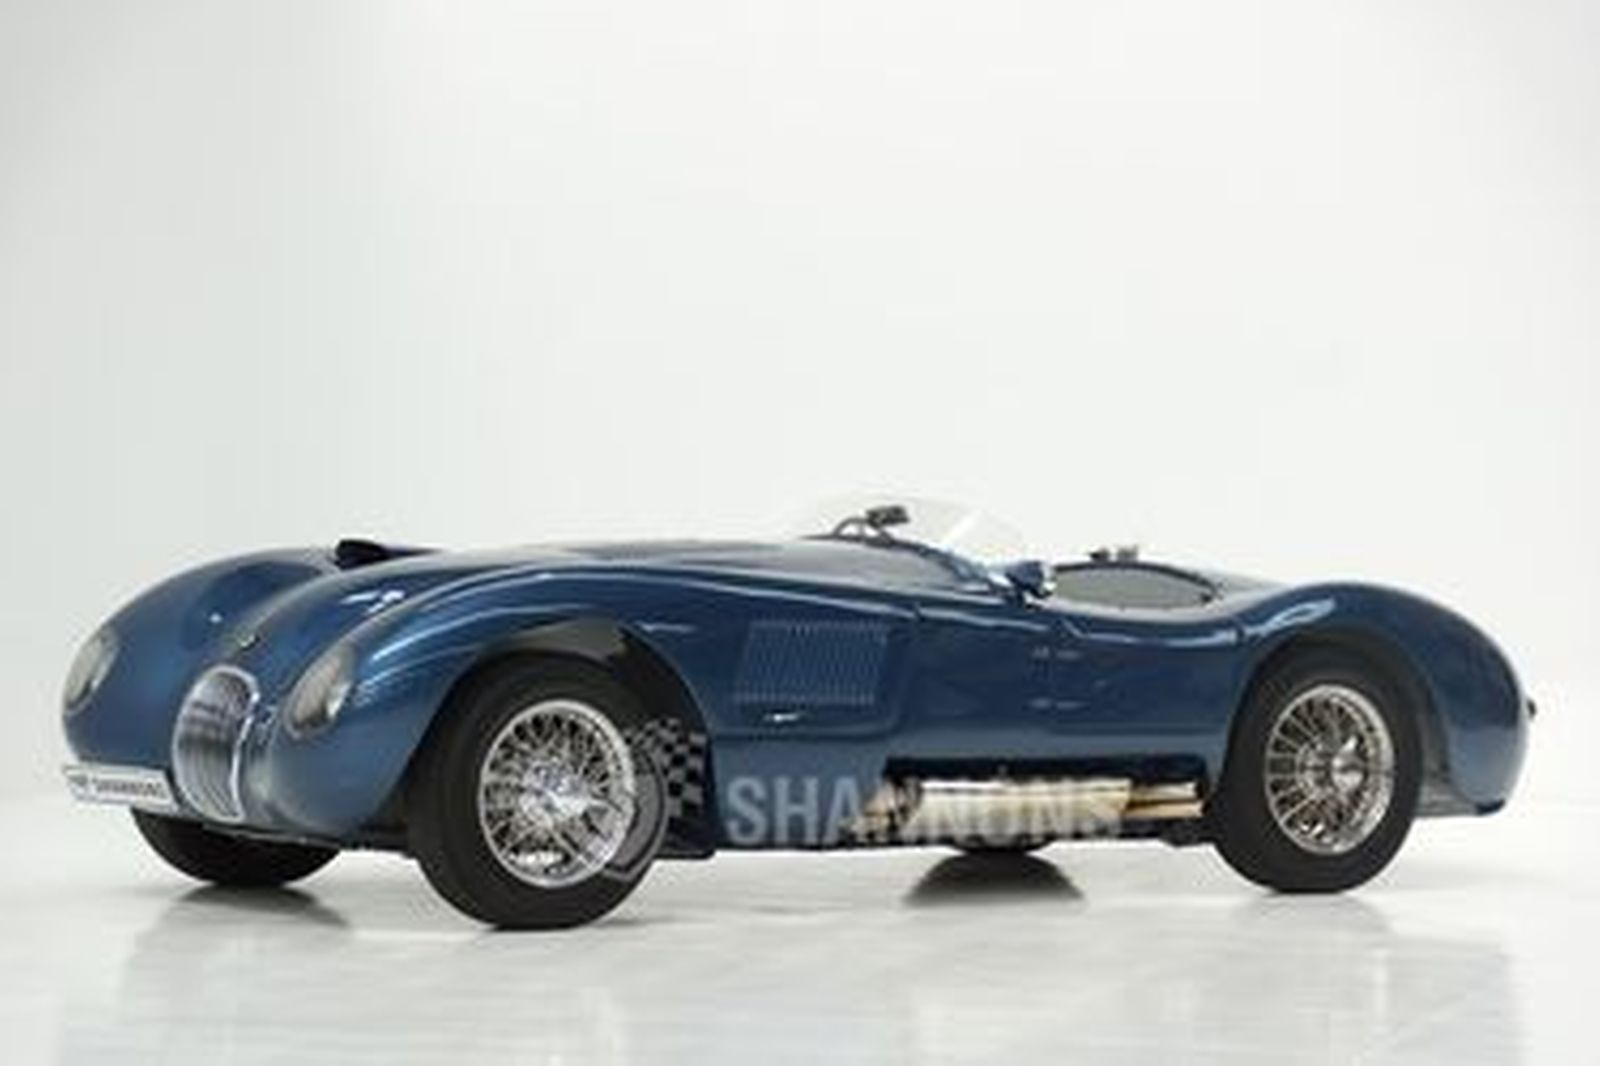 Jaguar C-Type 1953 Style (Recreation) - From the 'Ian Cummins Collection'